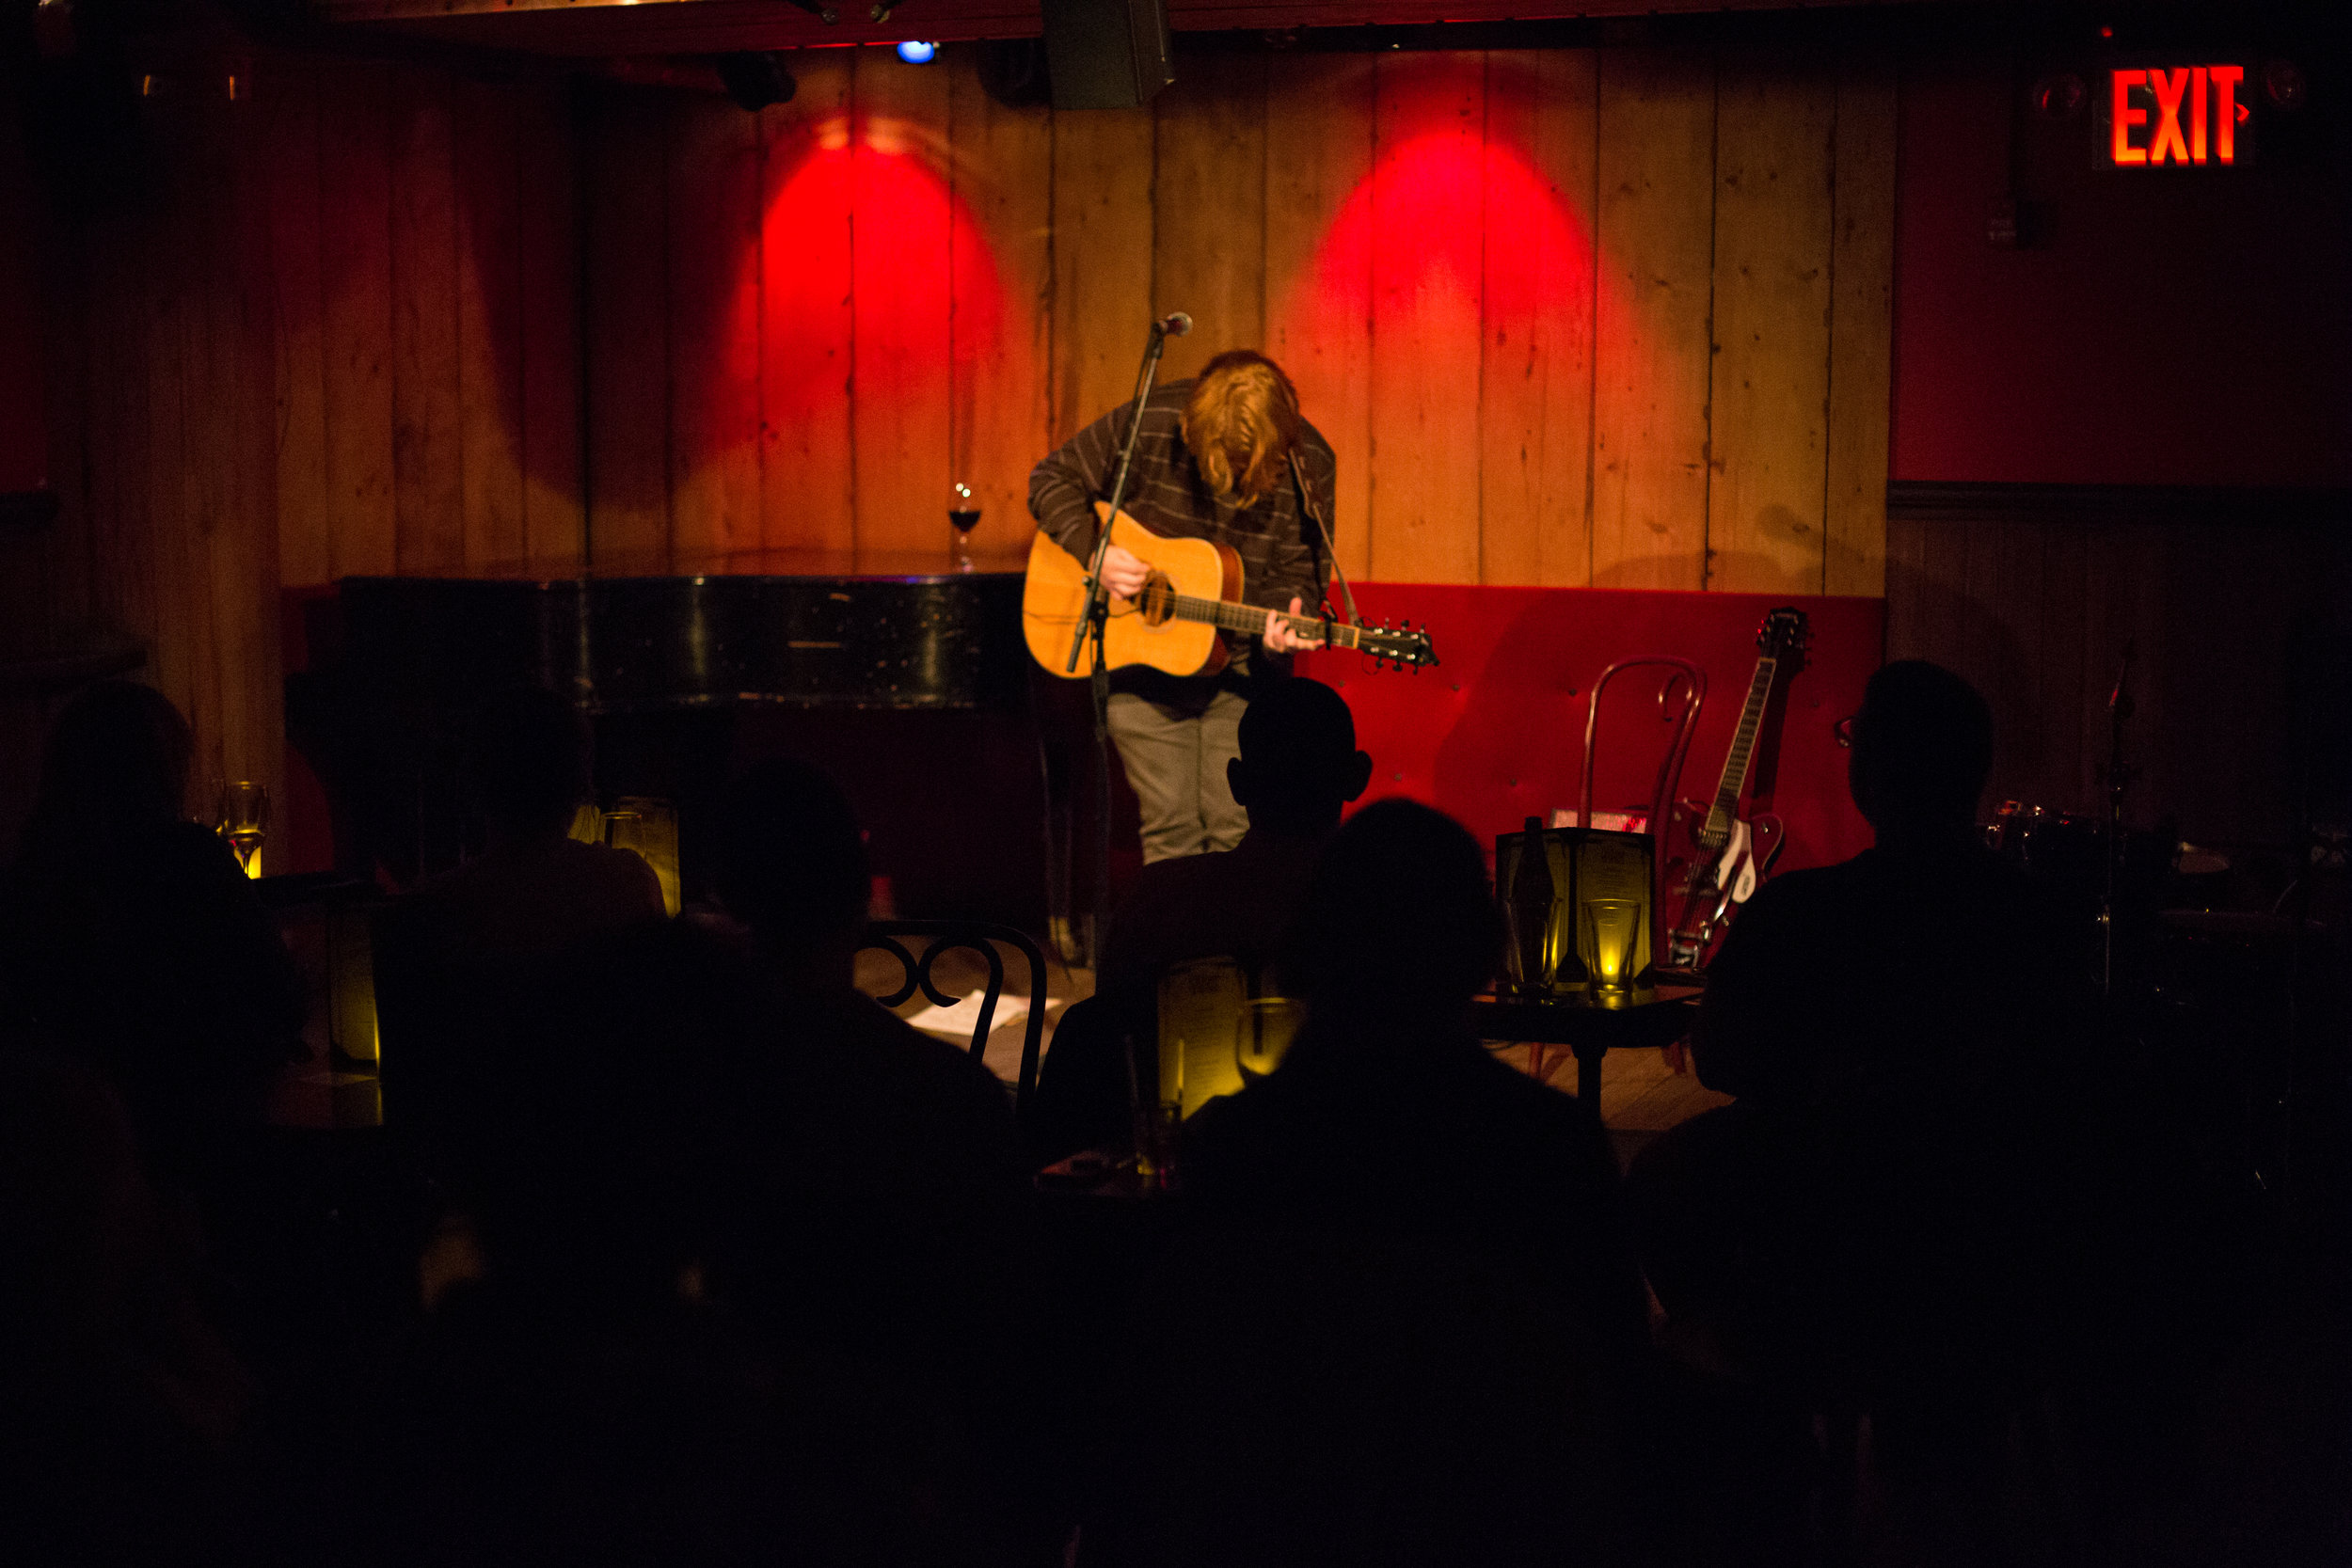 J. Alan Schneider performing a quaint acoustic show in front of a Lower East Side crowd at Rockwood Music Hall, Stage 3. Photo courtesy of Sergio Carrasco.